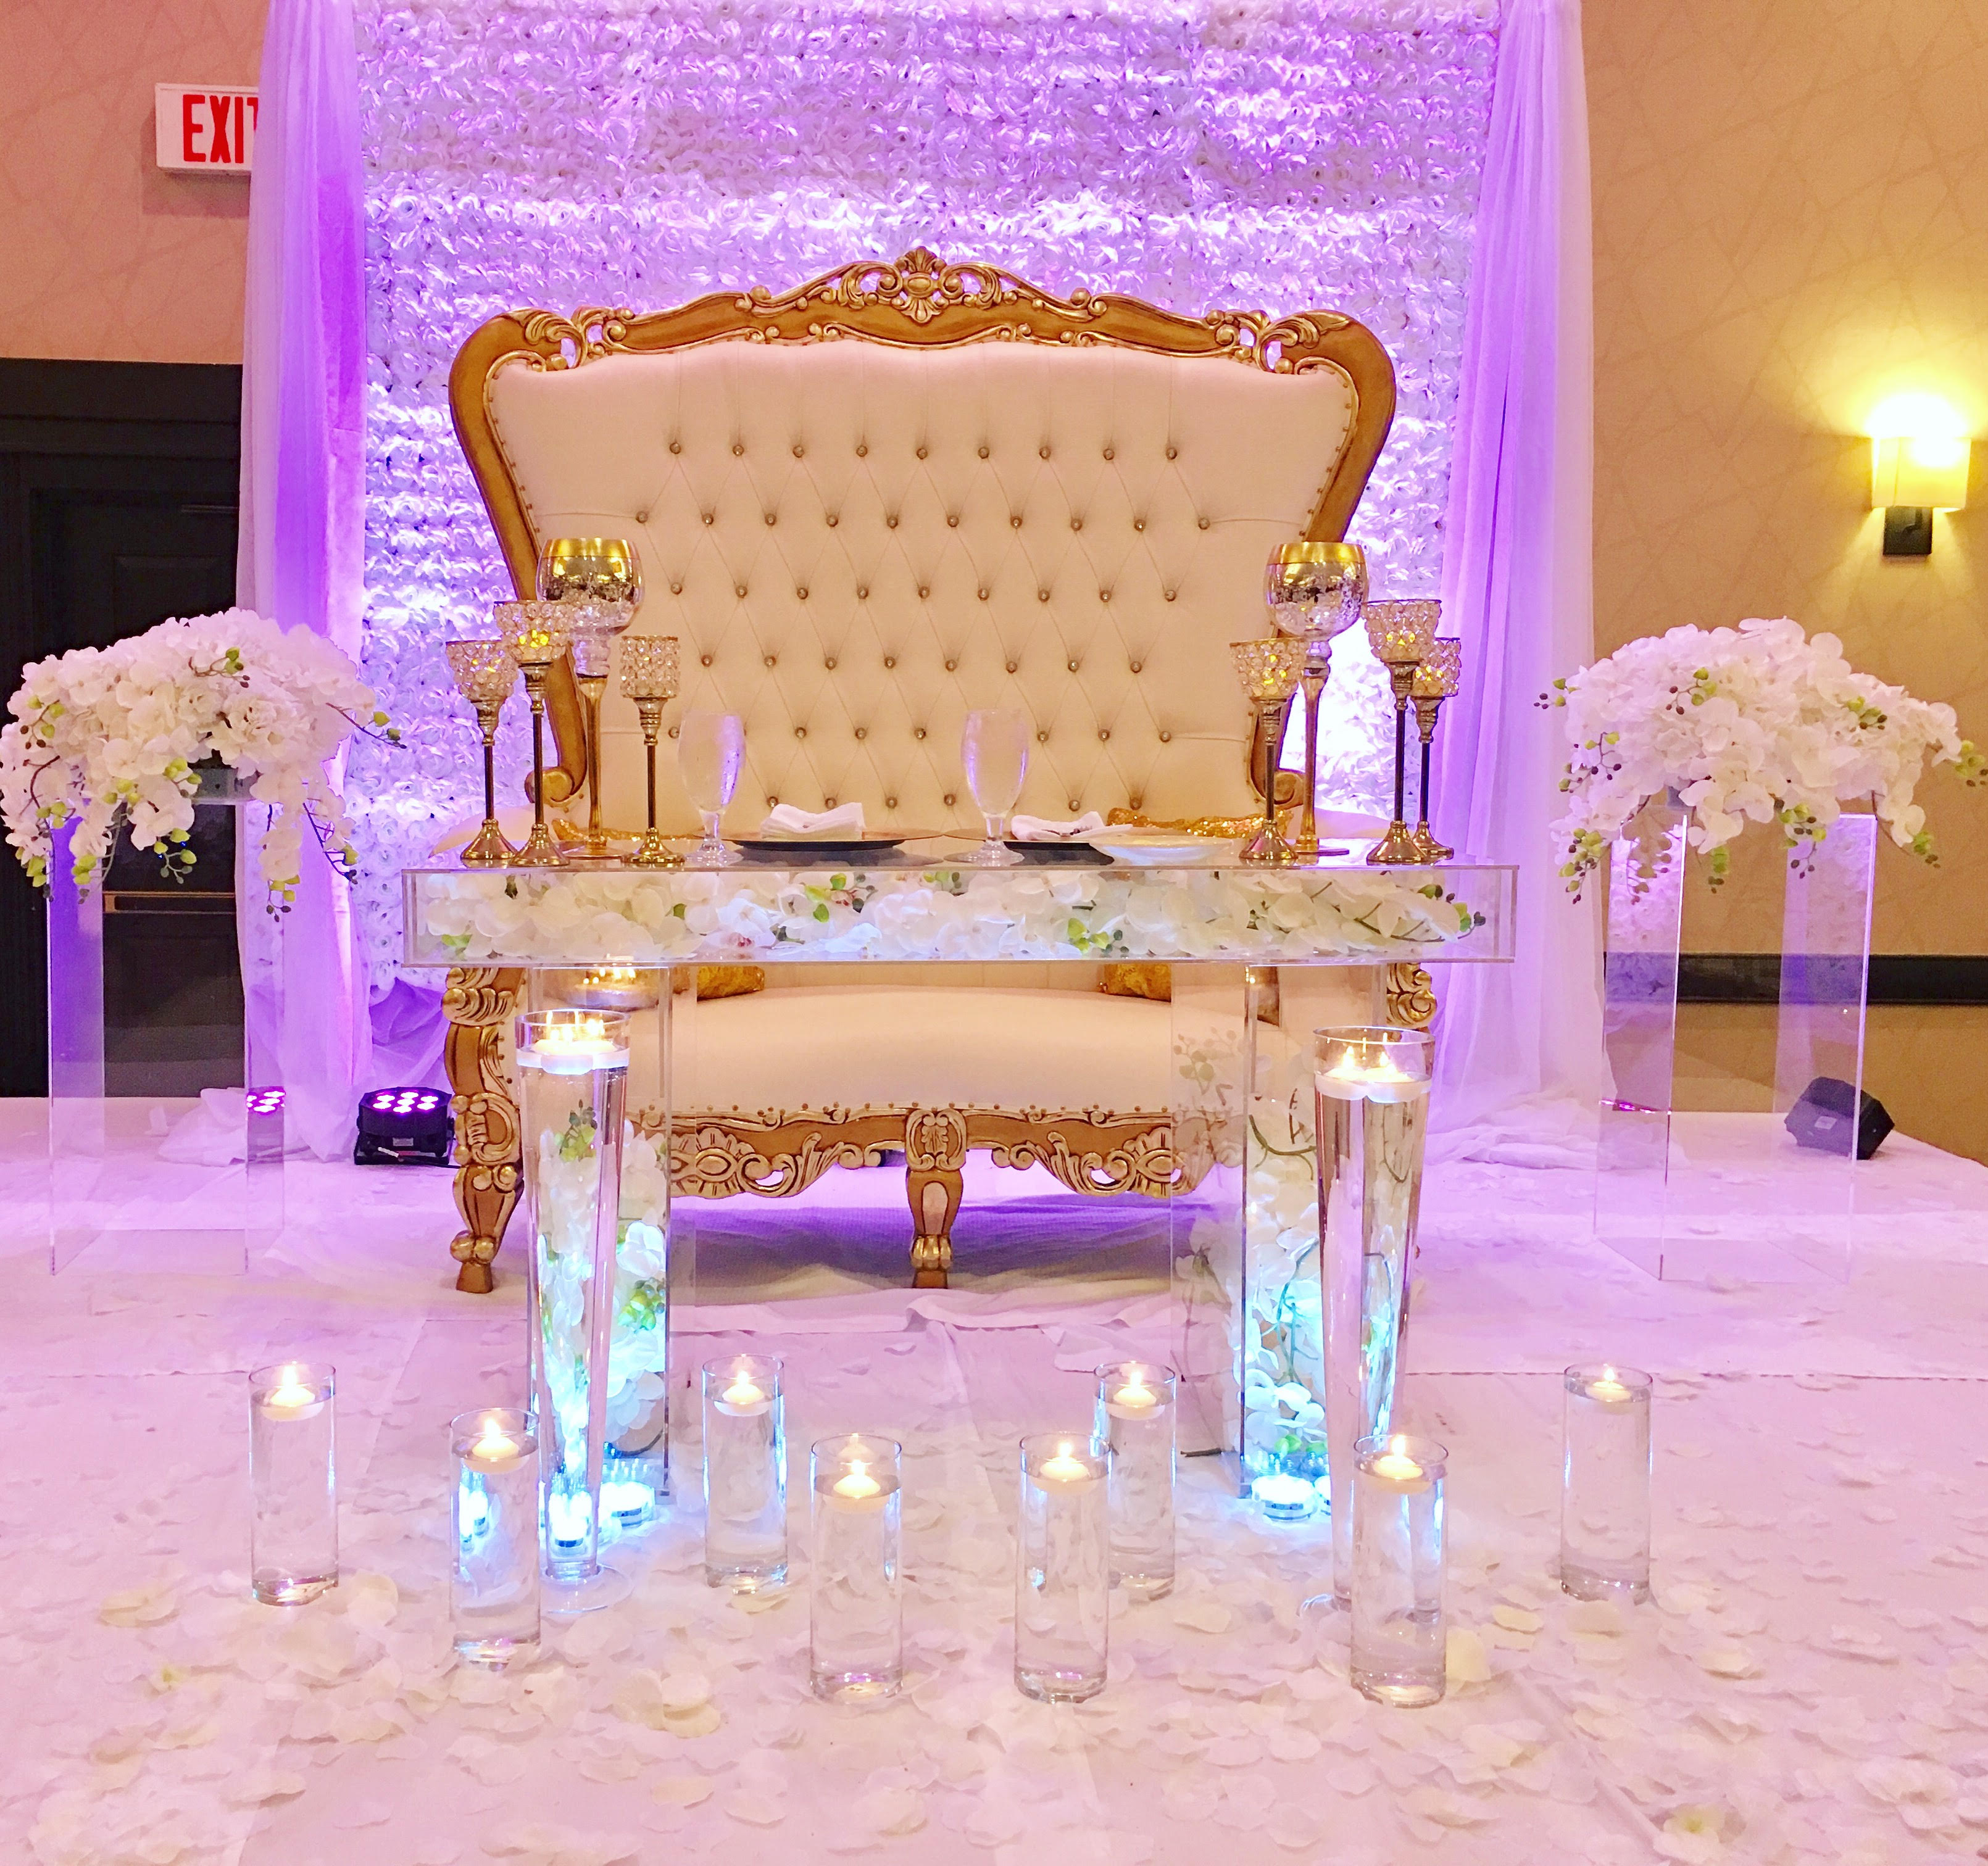 acrylic_bridal table_modular top_inset legs